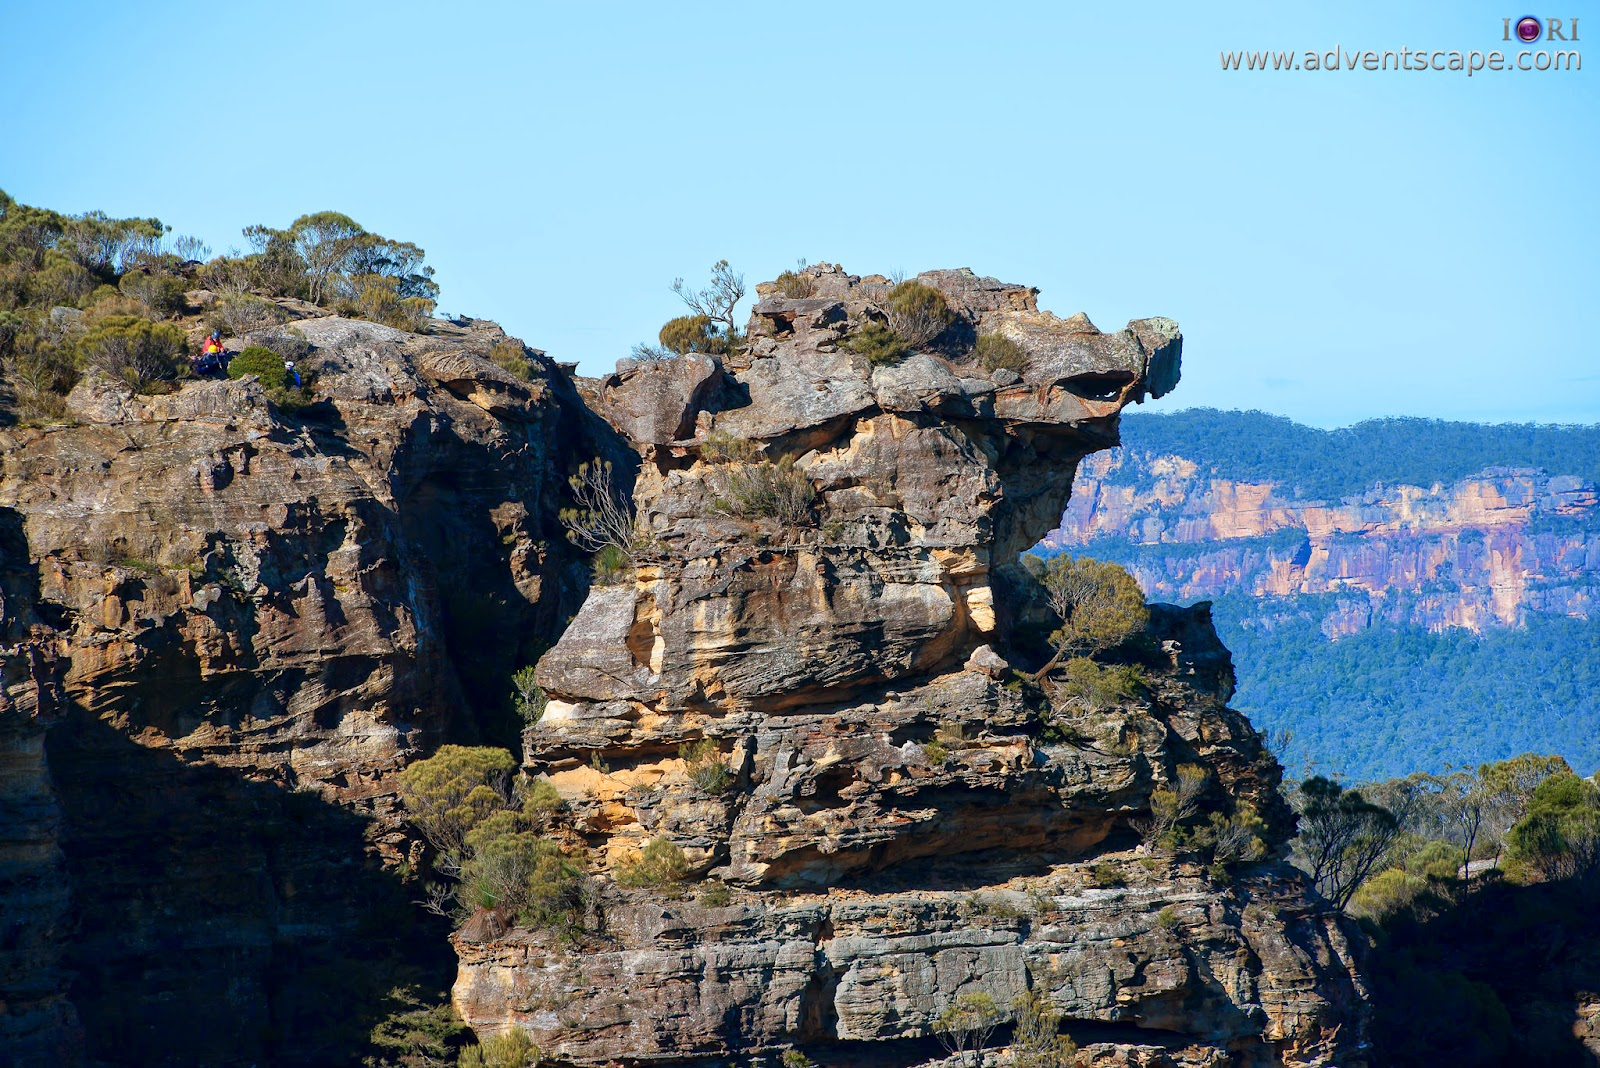 Philip Avellana, Australian Landscape Photographer, Katoomba, NSW, New South Wales, Australia, Blue Mountains, Boar's Head, lookout, Cahills lookout, vantage point, Cliff Drive